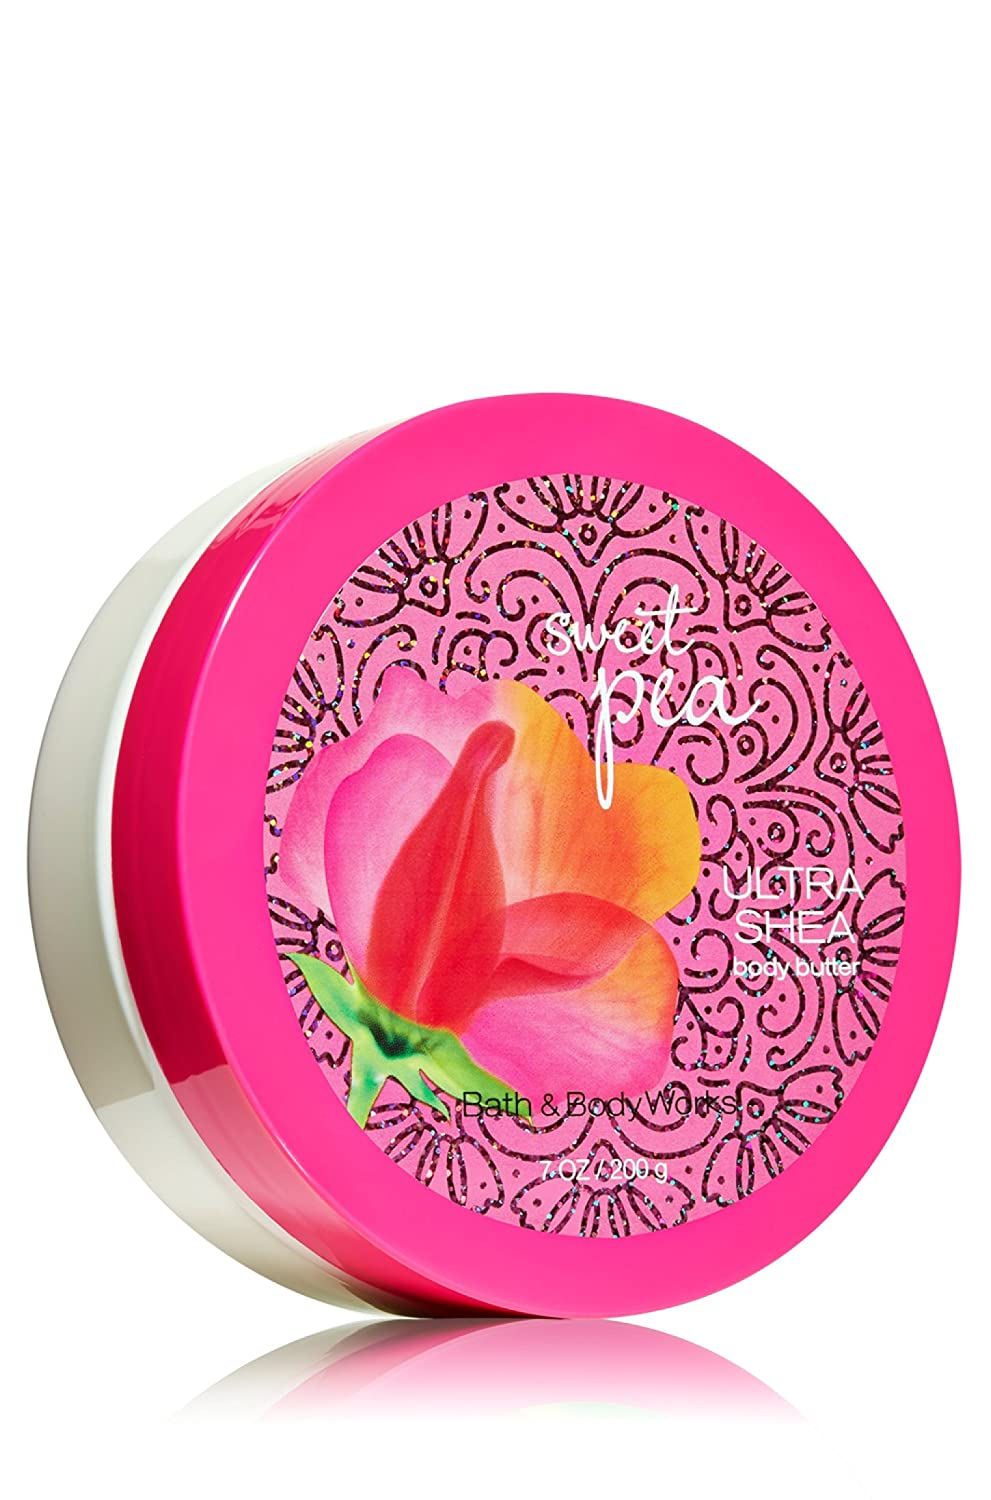 Amazon.com : Bath and Body Works Sweet Pea Ultra Shea Body Butter ...